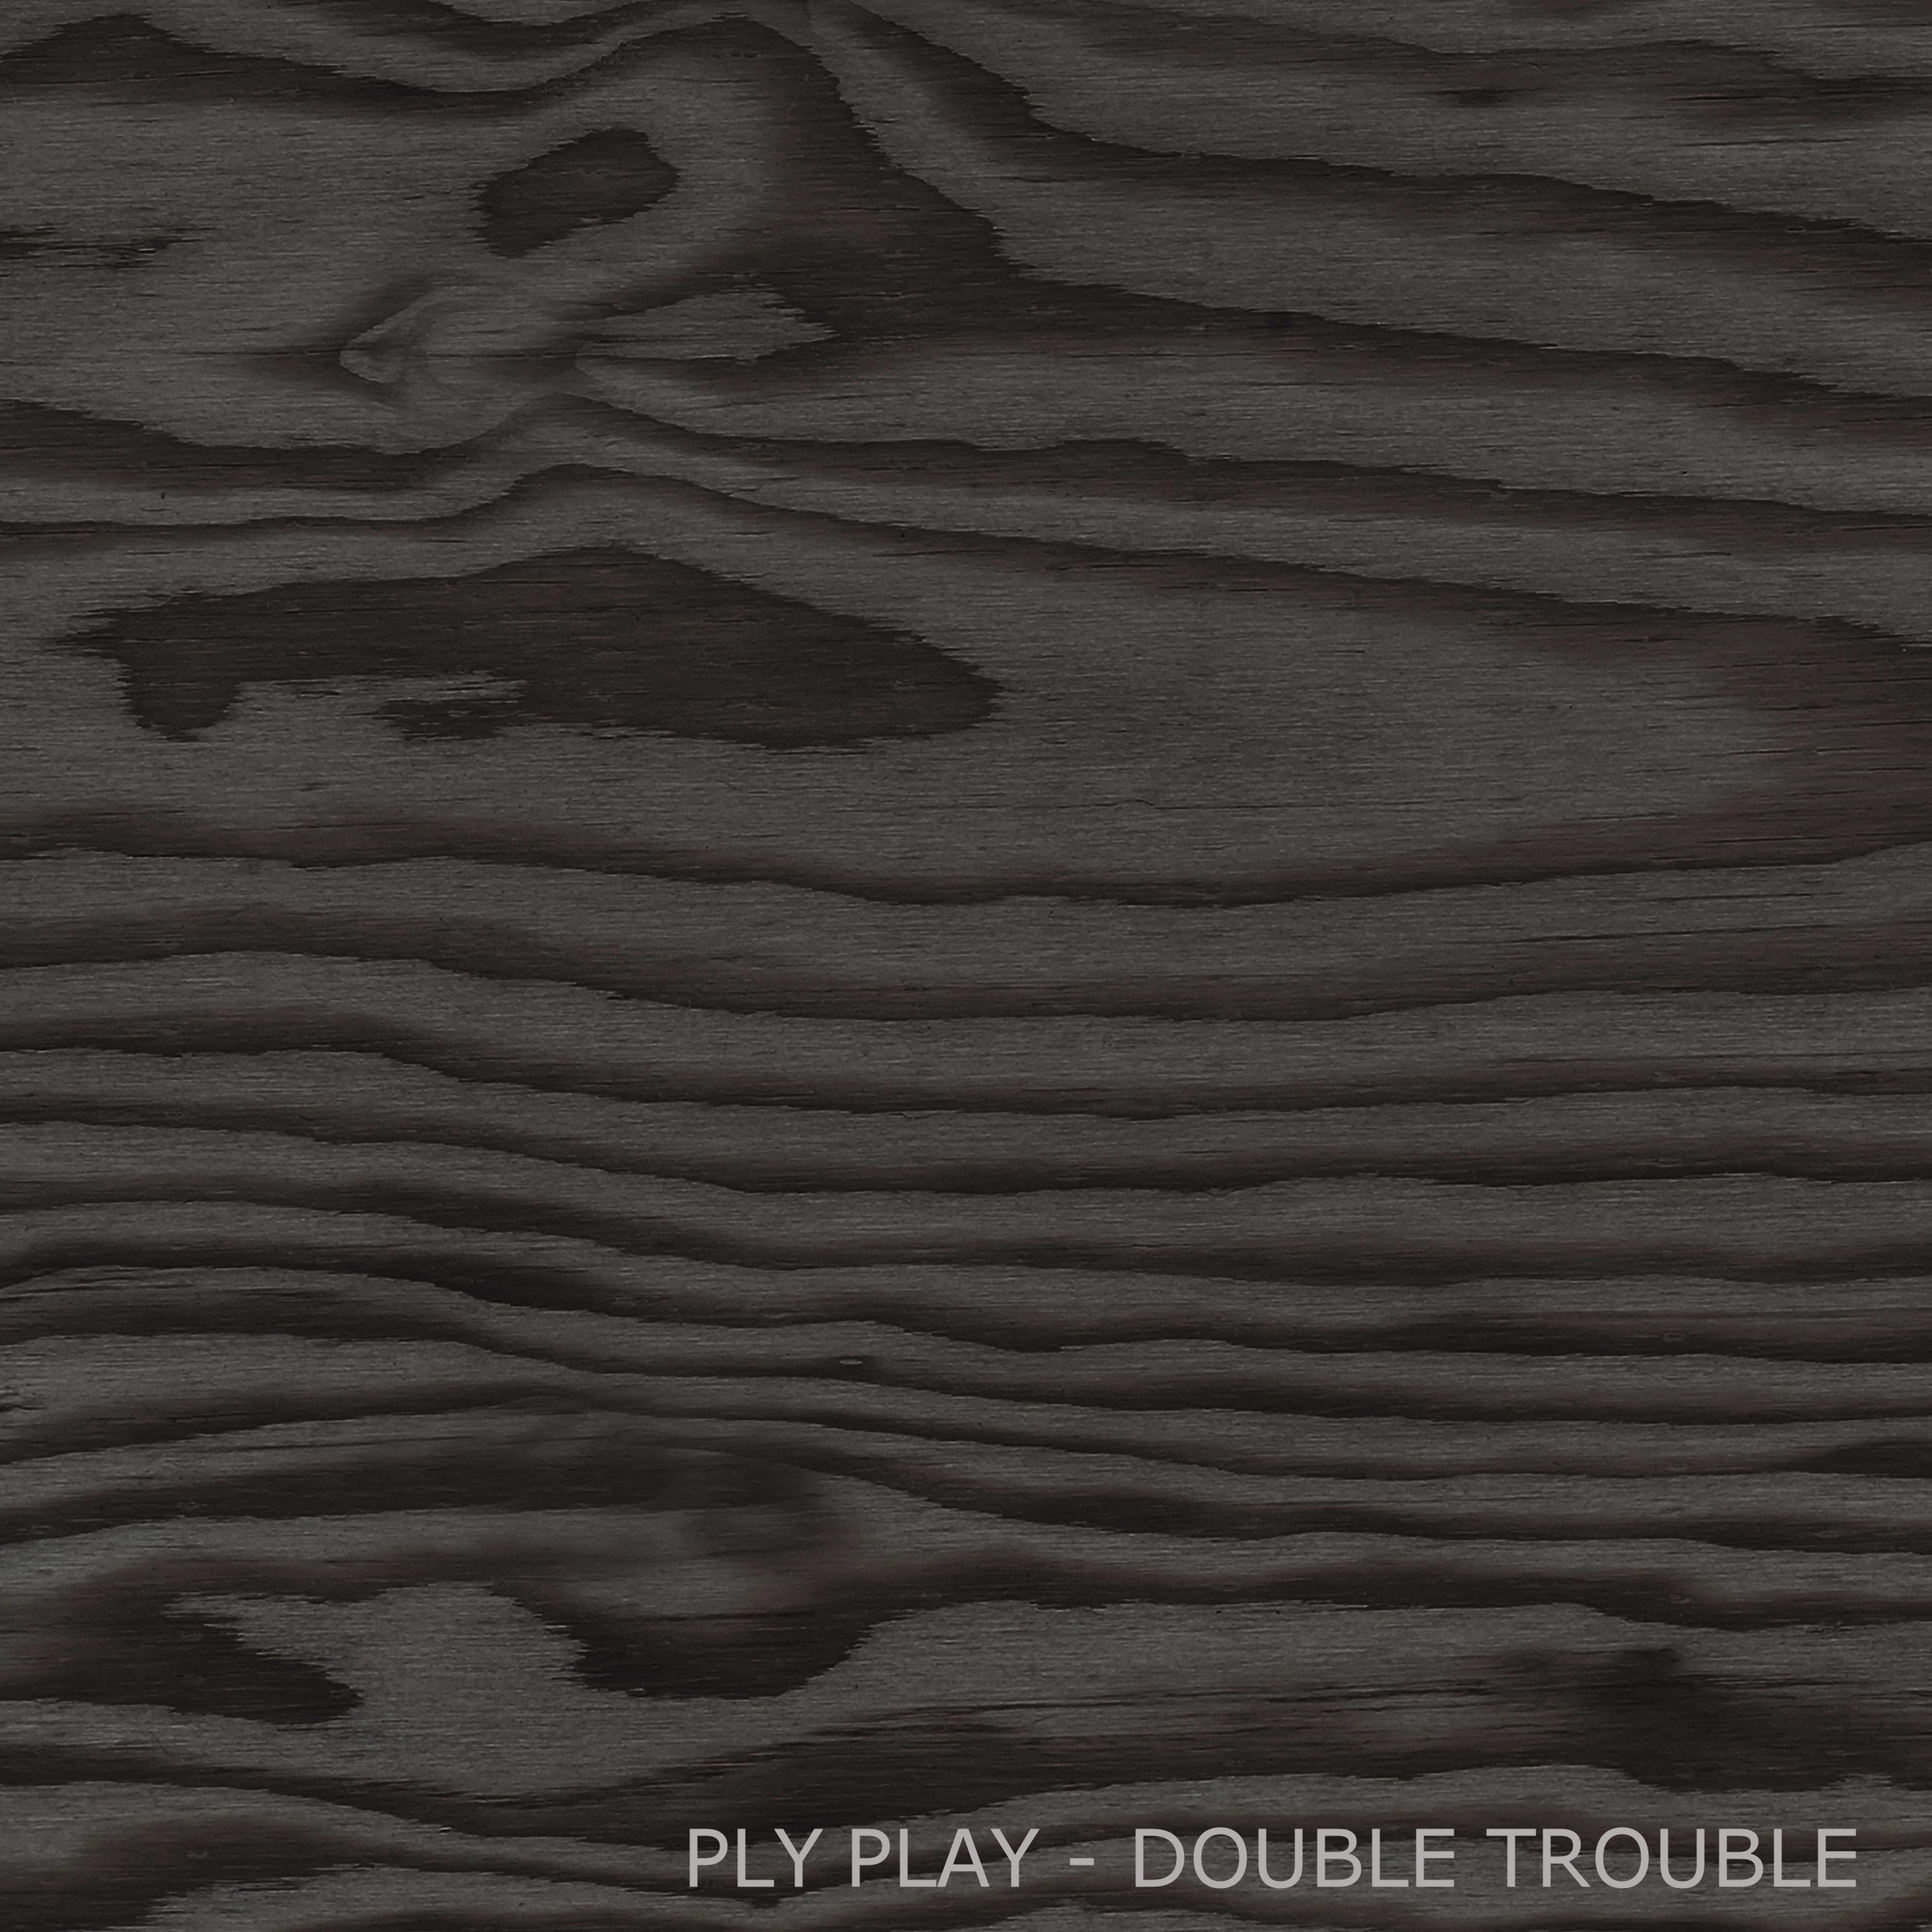 PlyPlay Interior Plywood Prefinished